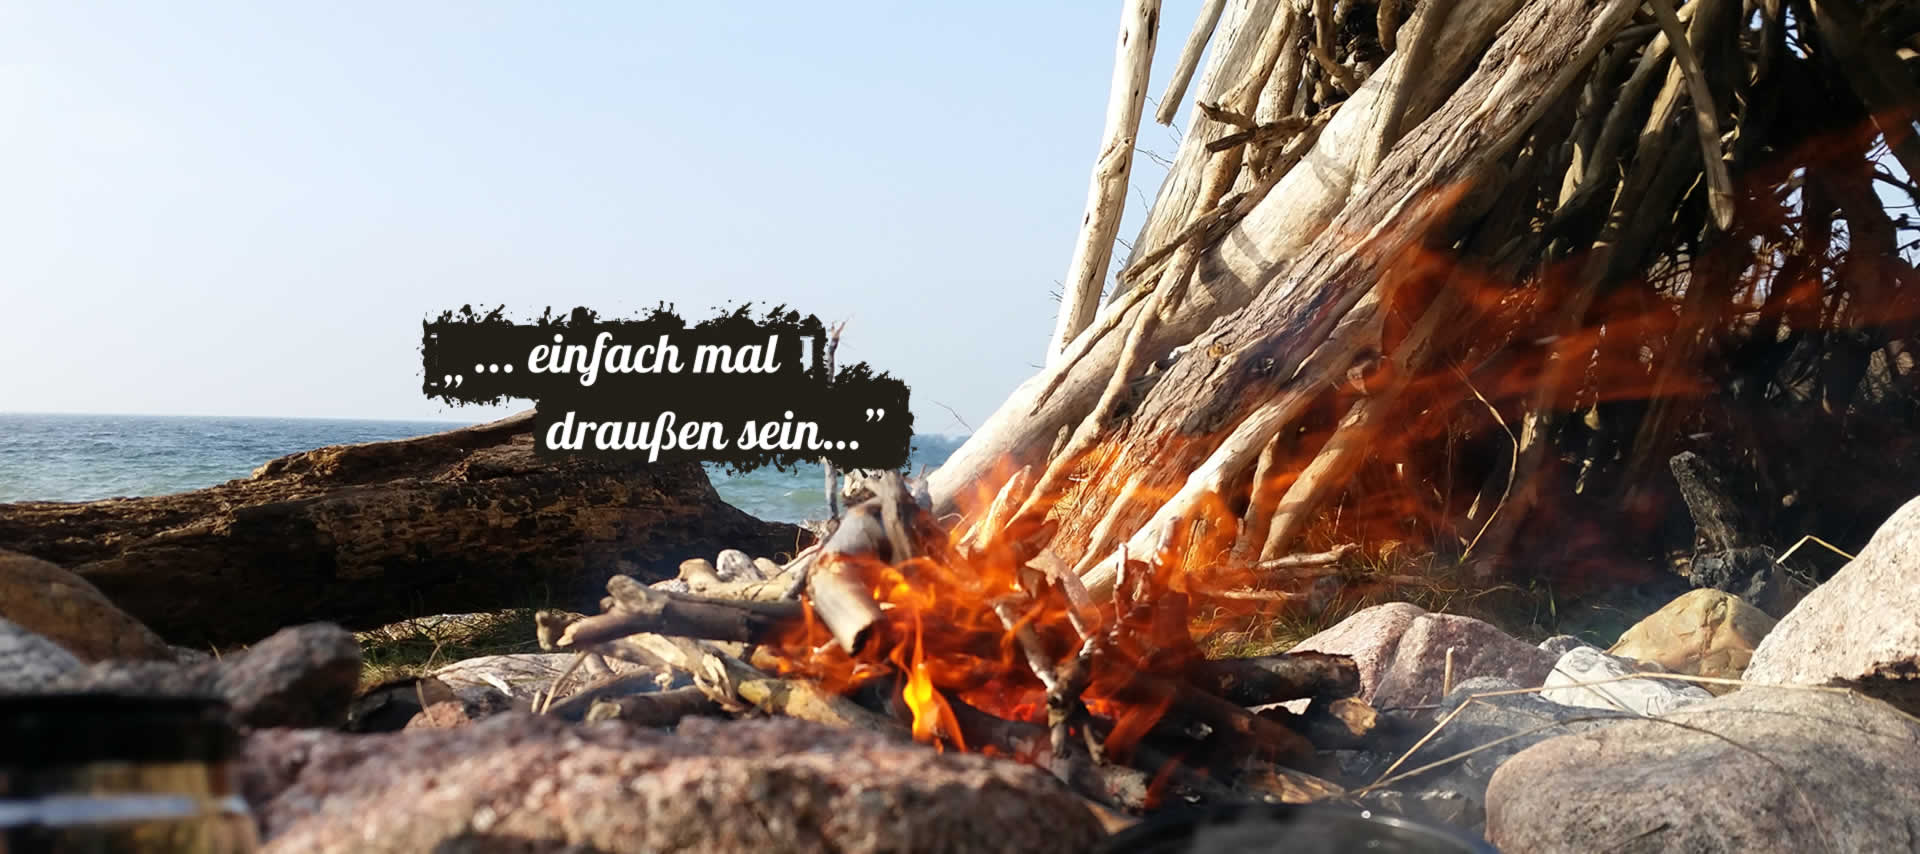 Lagerfeuer am Meer